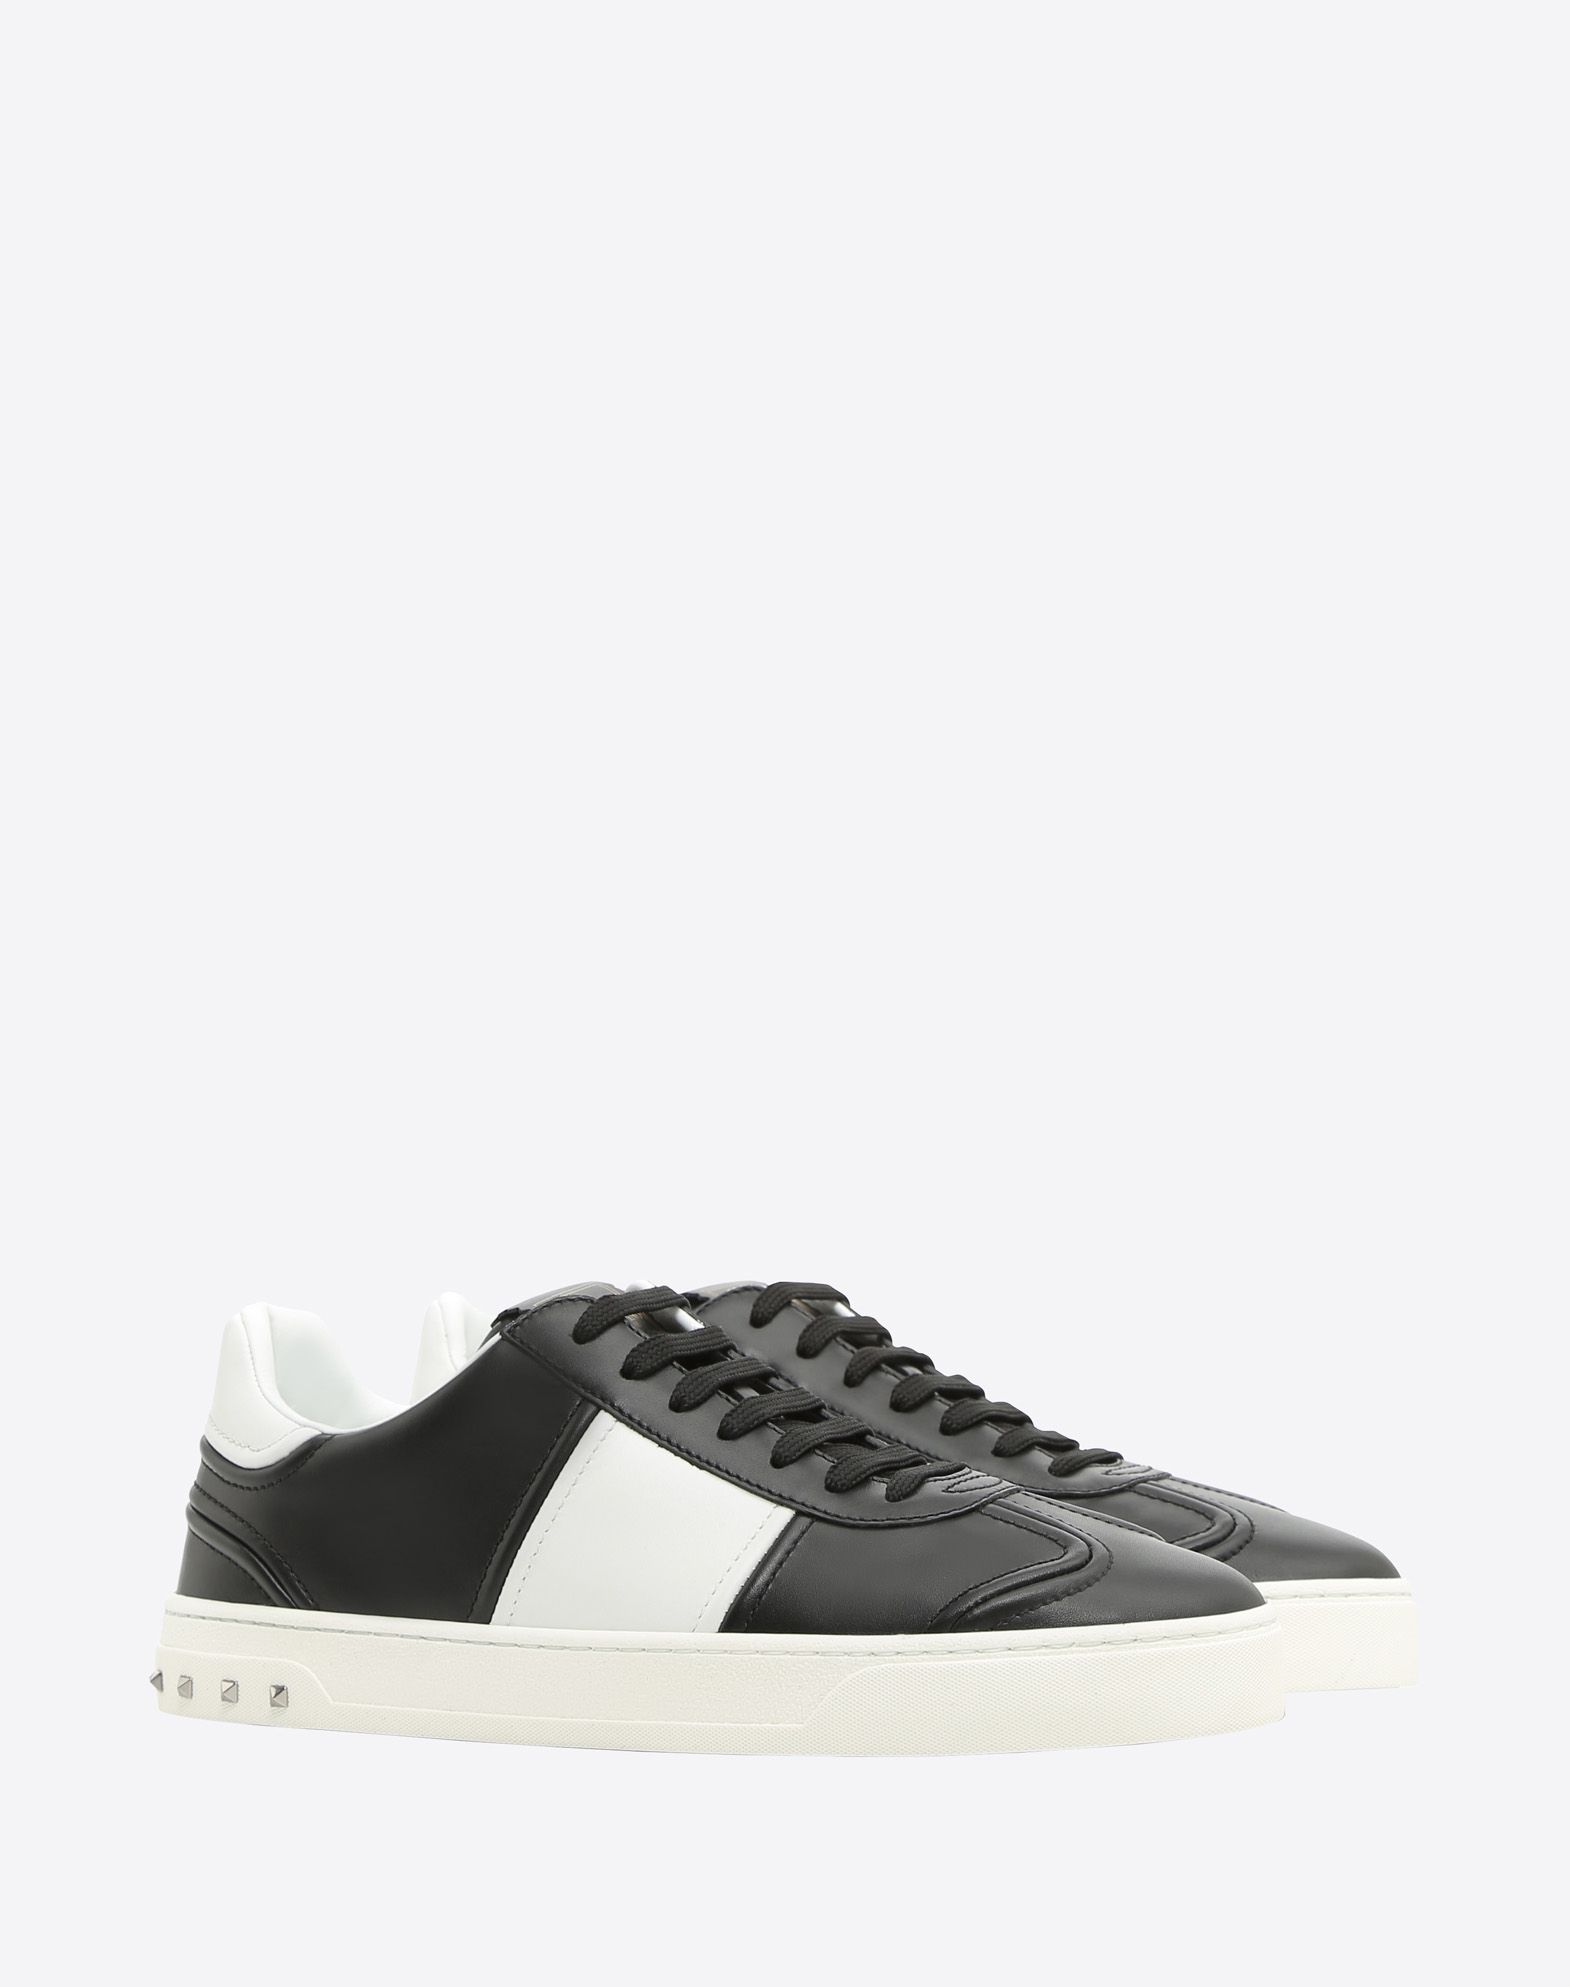 VALENTINO GARAVANI UOMO Sneakers Flycrew LOW-TOP SNEAKERS U r